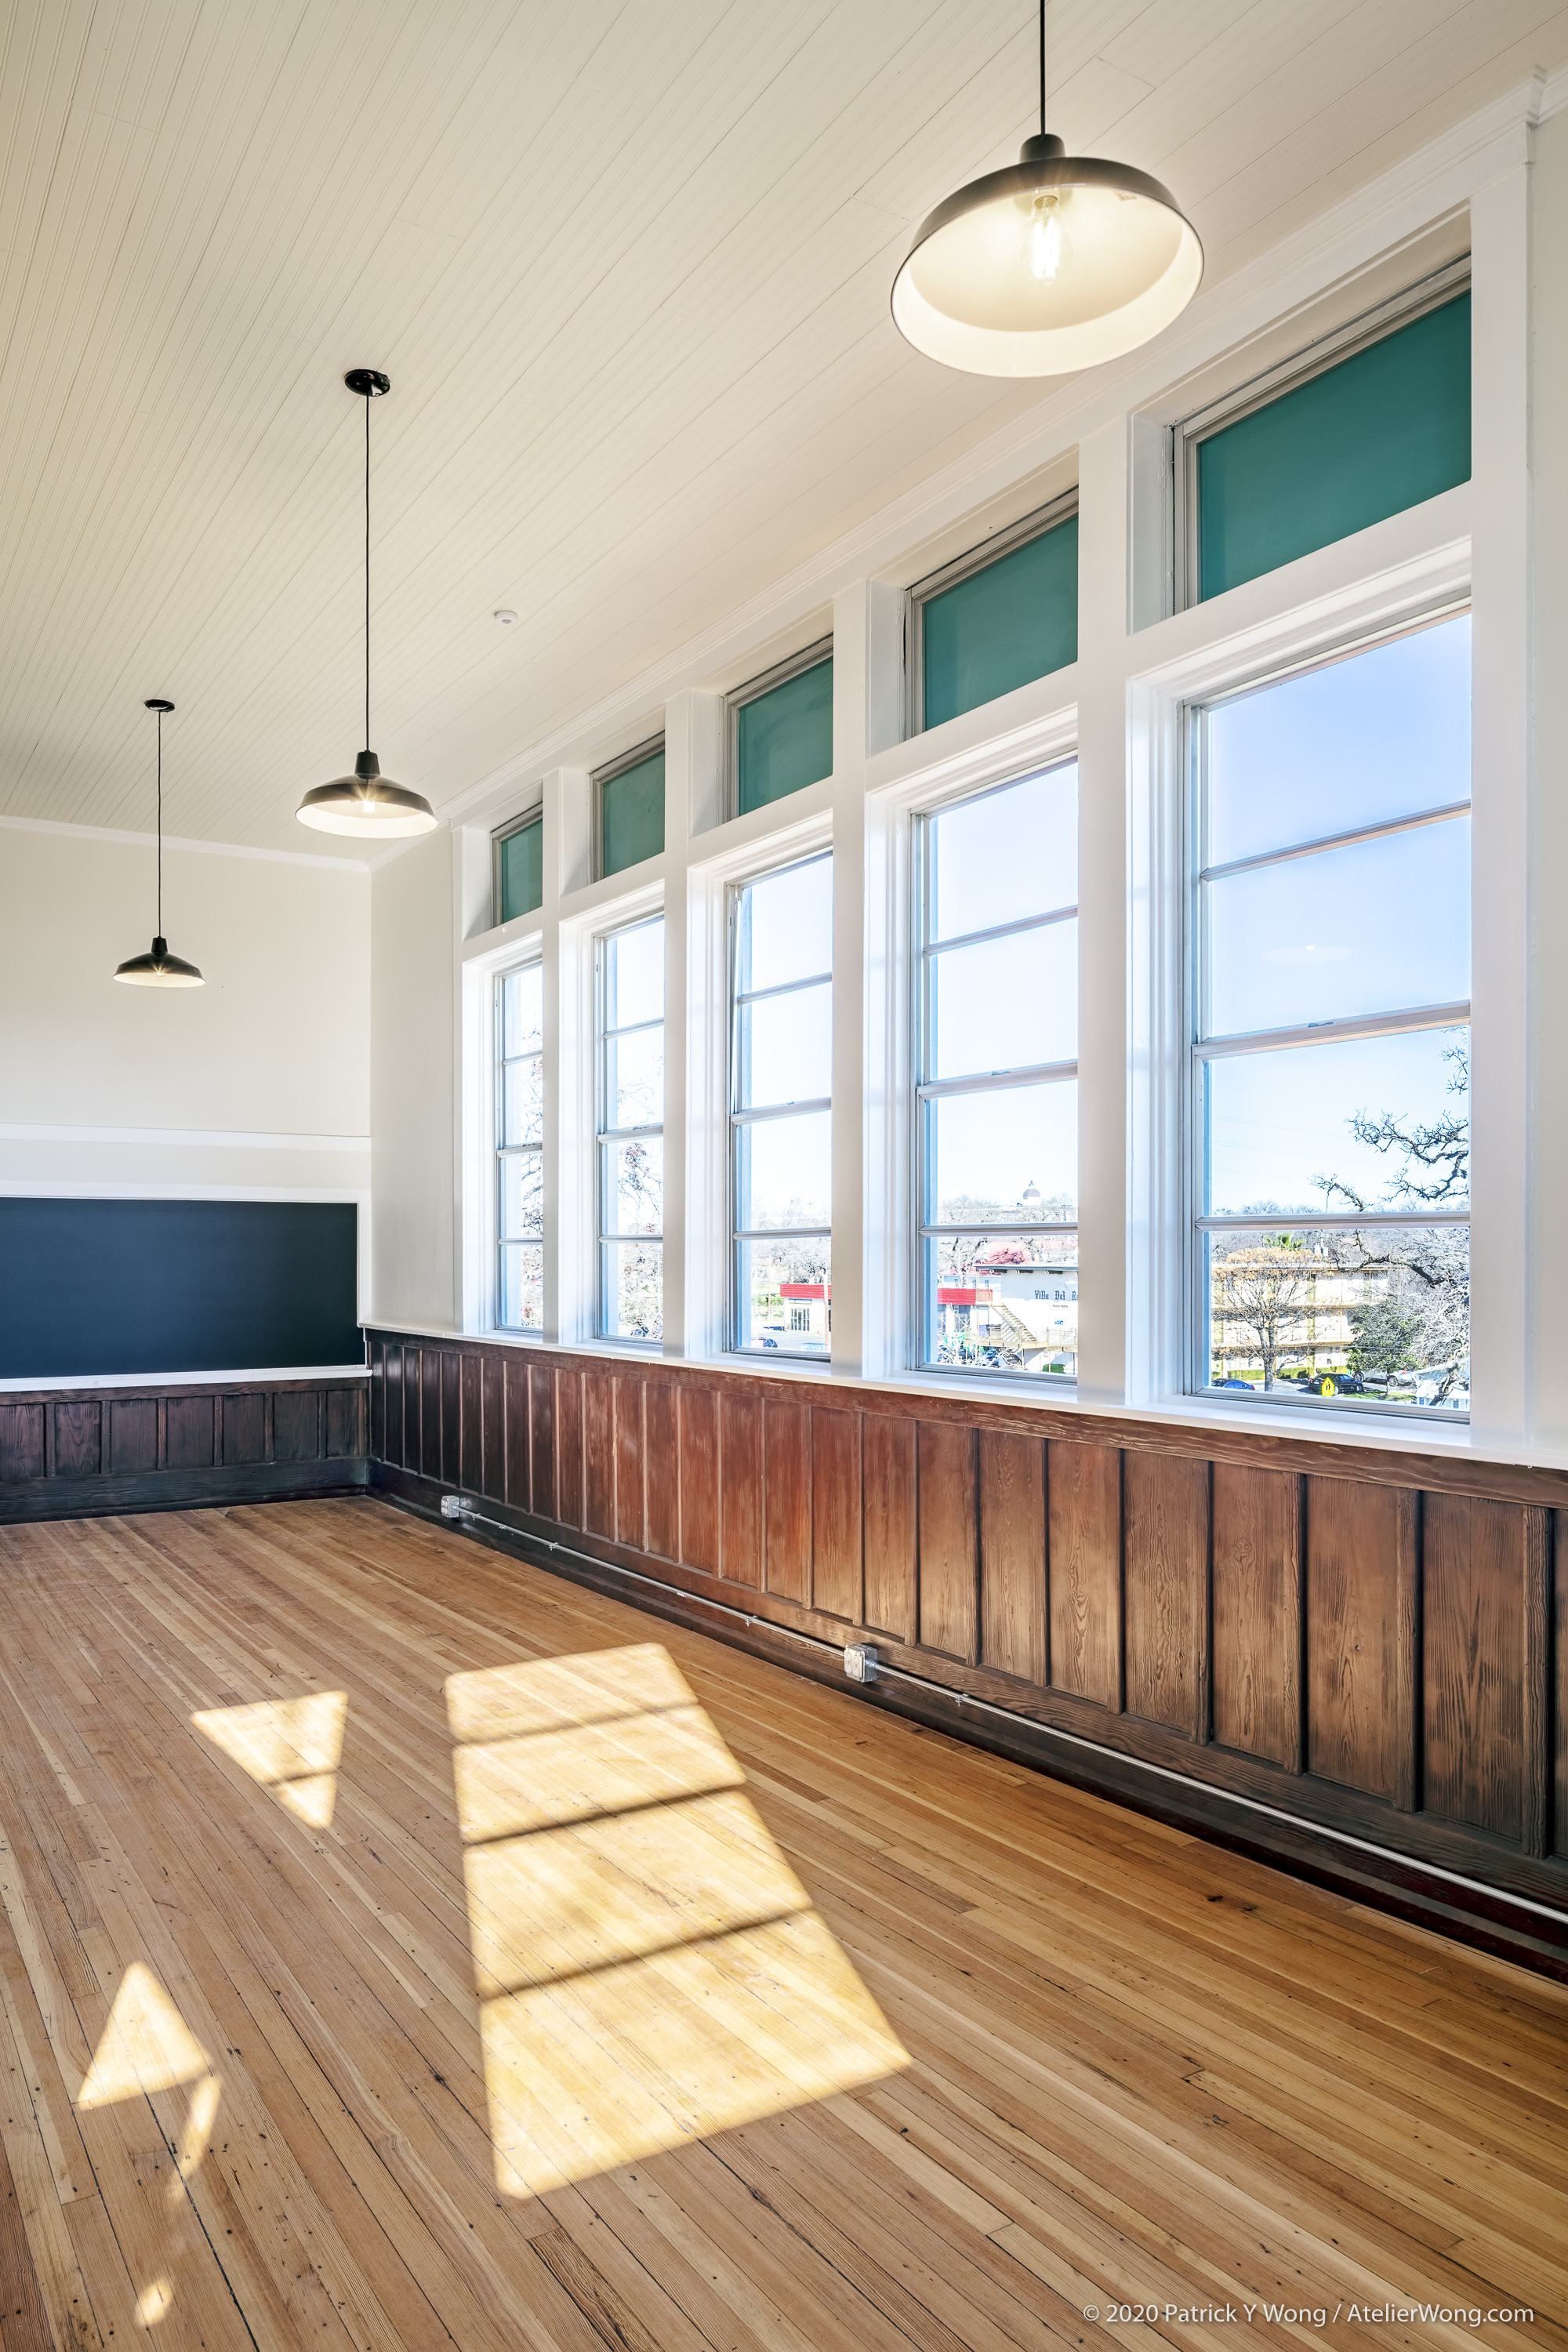 Restored, Historic Wainscot and Chalkboard in the Baker School in Austin, Texas